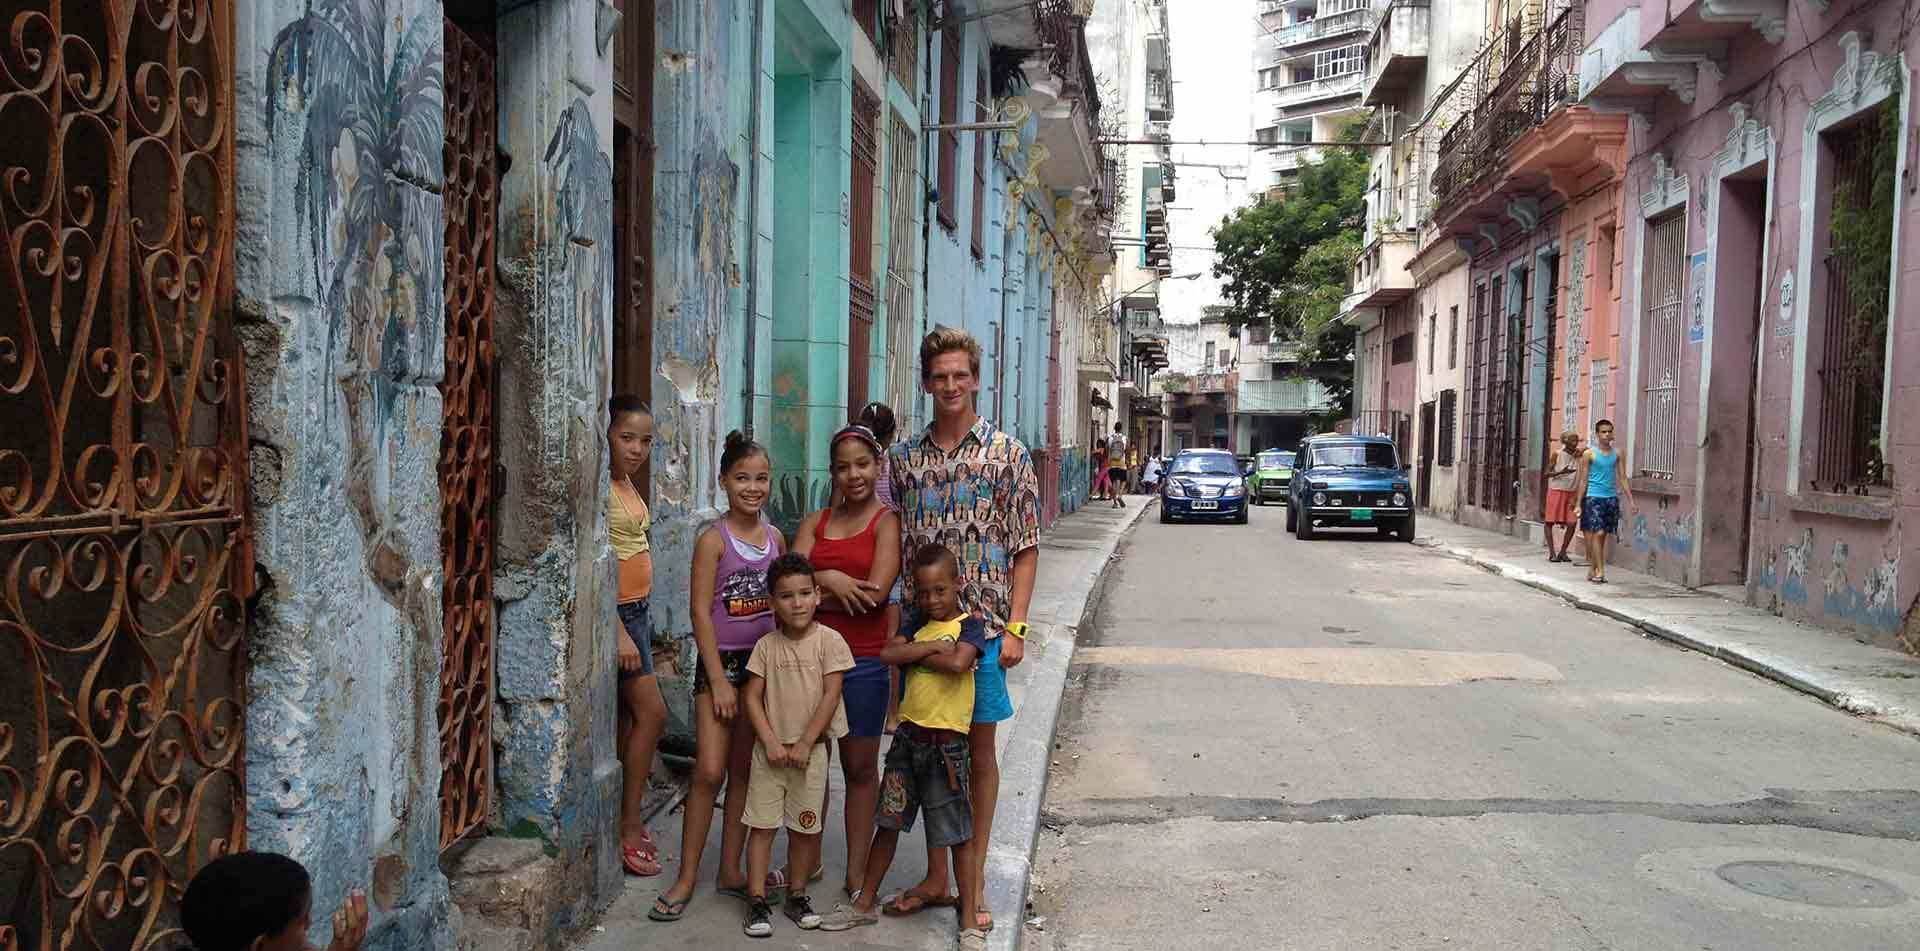 Group of kids in Cuba